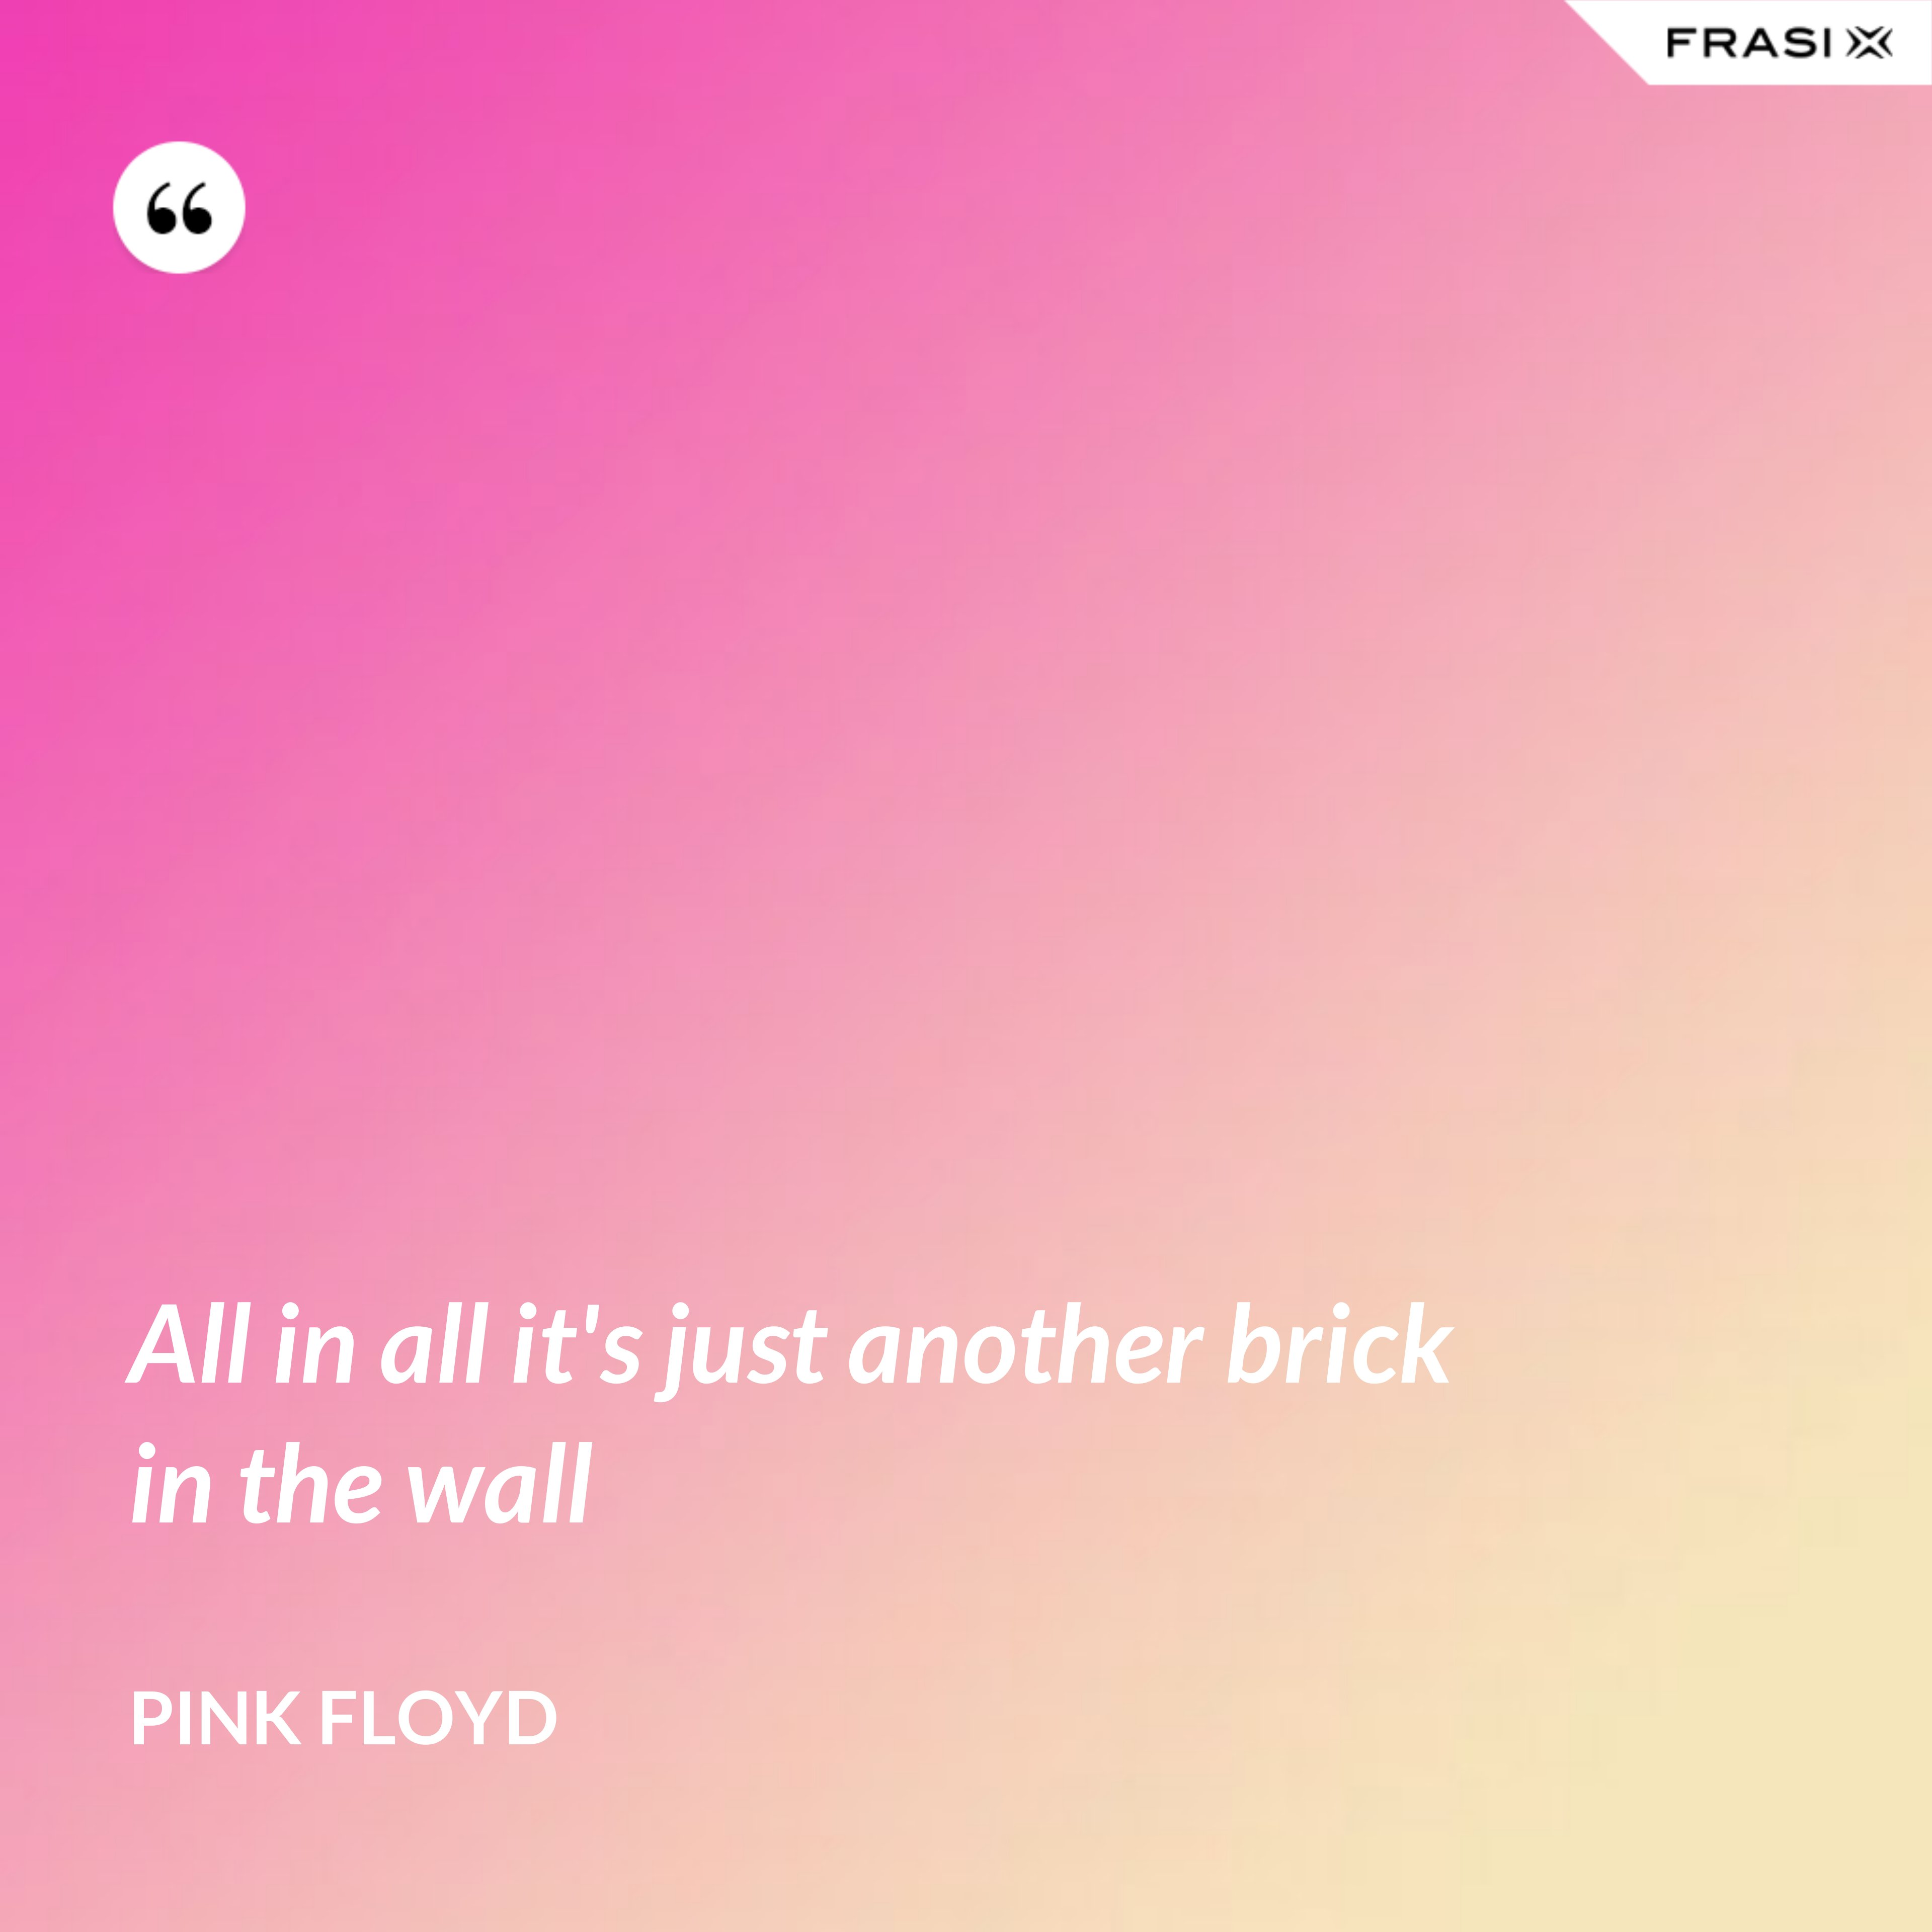 All in all it's just another brick in the wall - Pink Floyd